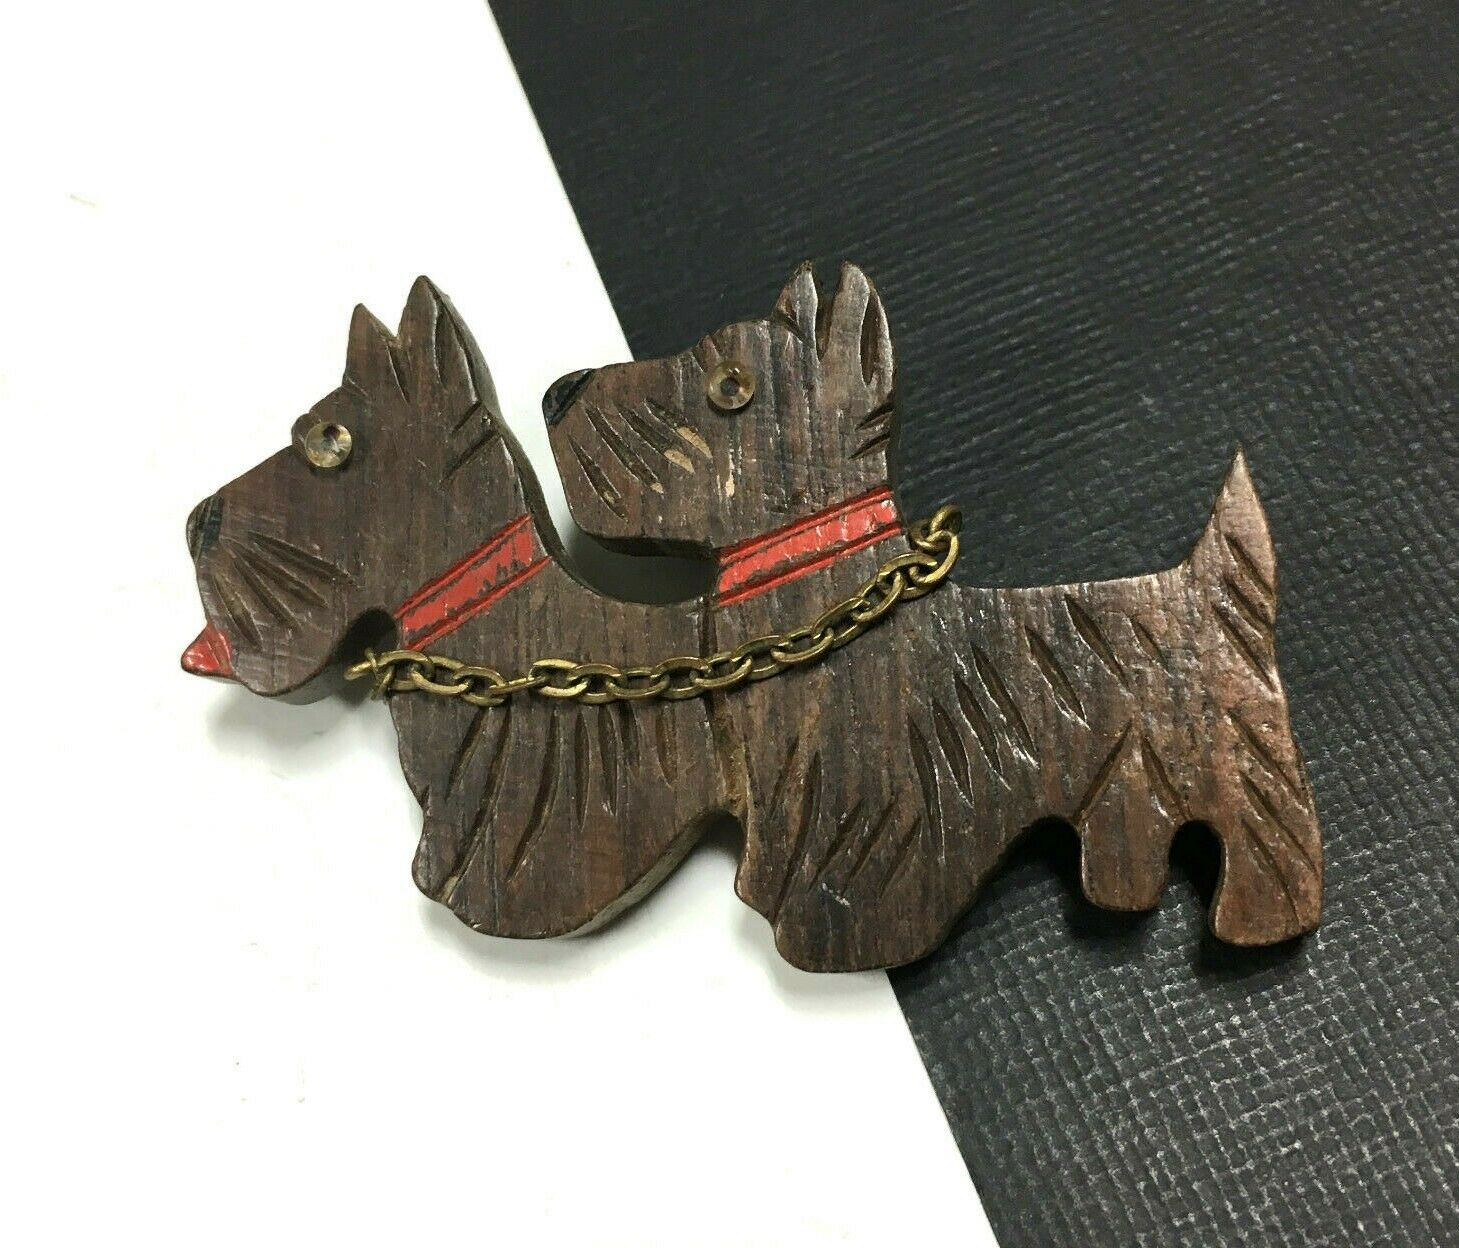 bacb7810c Old Brown Wood Carved Scottie DOGS Red Collar & gold Chain Brooch MM50e  Vintage nqfnvr2025-Pins, Brooches